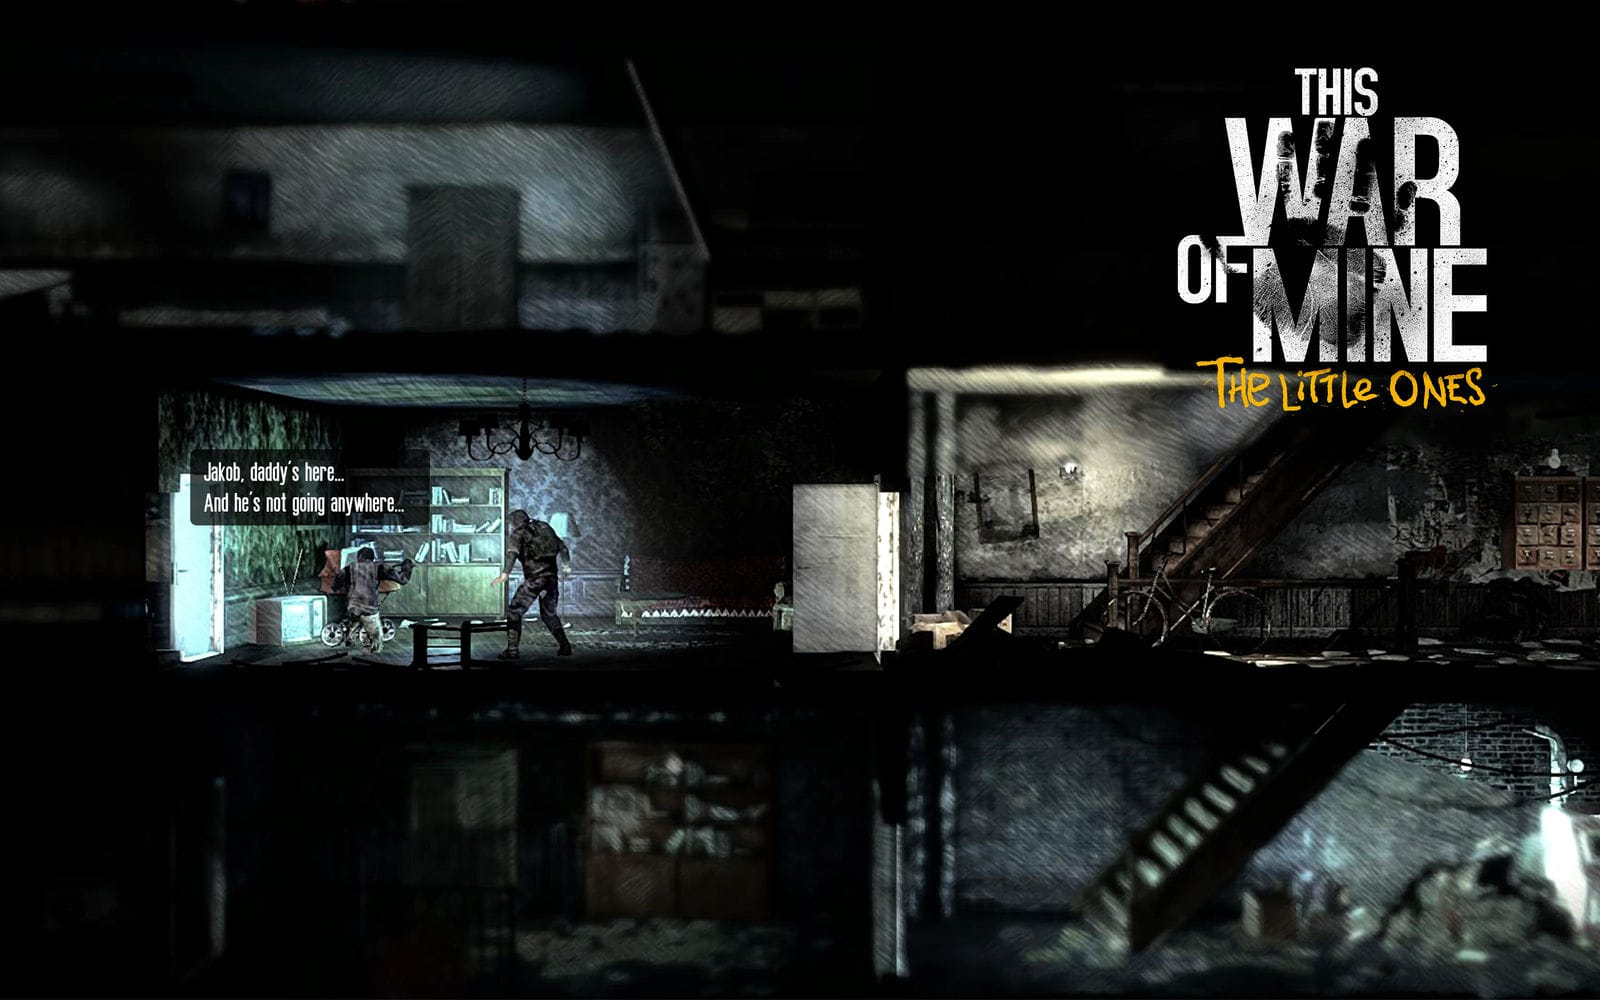 This War of Mine 6.0.0 2d横版战争游戏-Mac毒